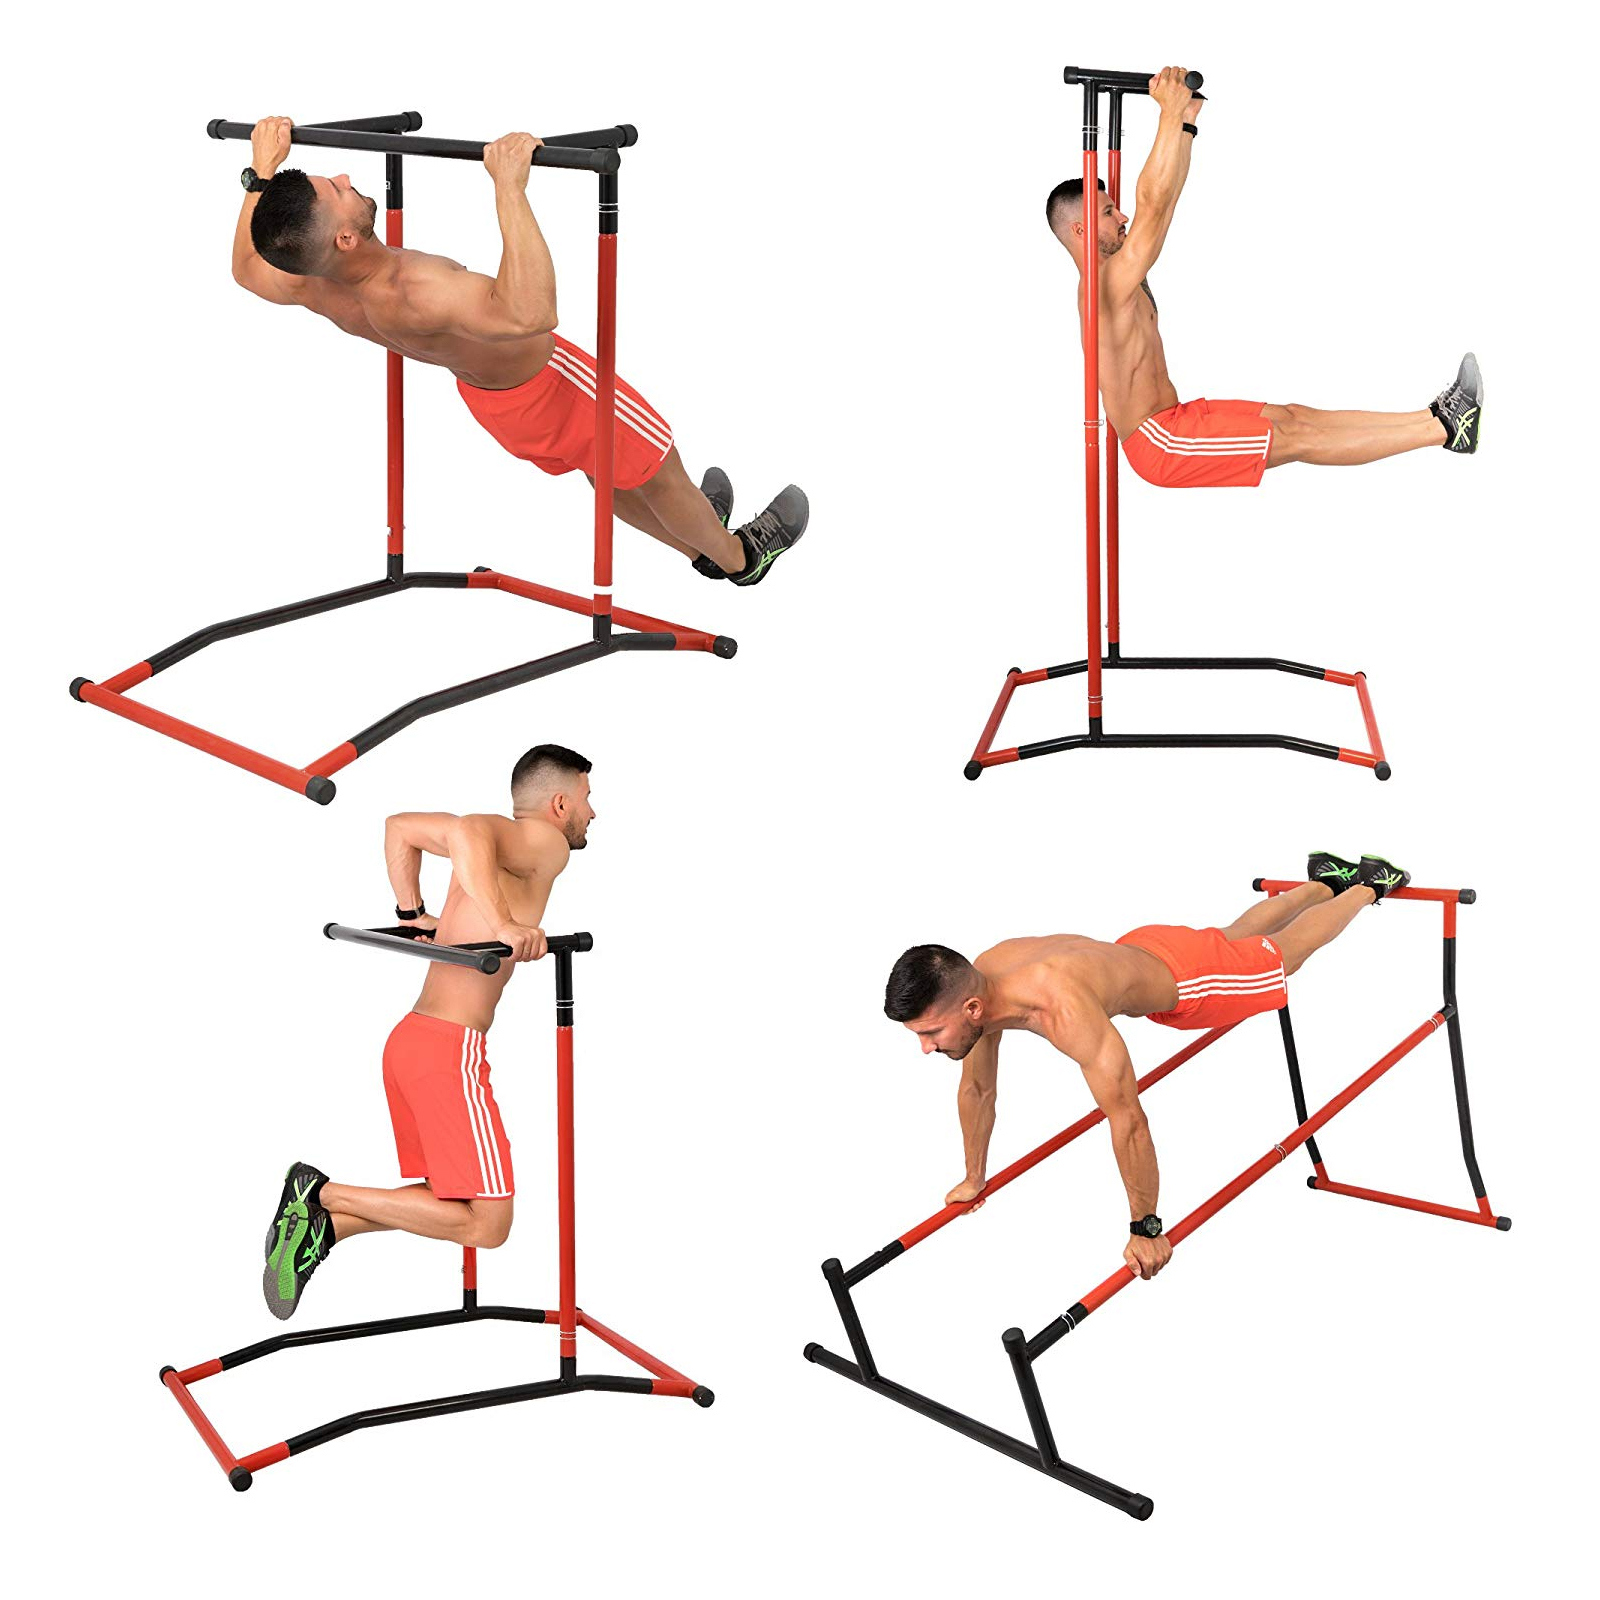 Portable-Power-Tower-for-Home-Gym-Workout-With-Dip-Station-And-Chin-Pull-Up-Bar thumbnail 35